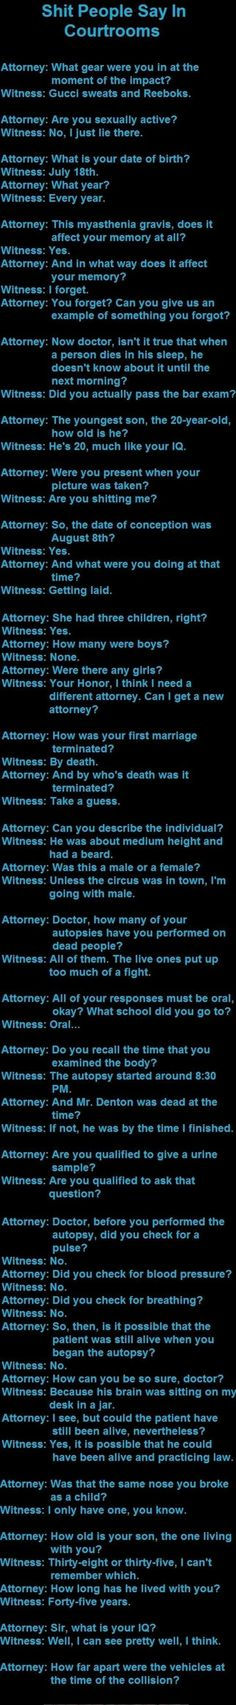 The most retarded questions asked by attorneys  - Imgur